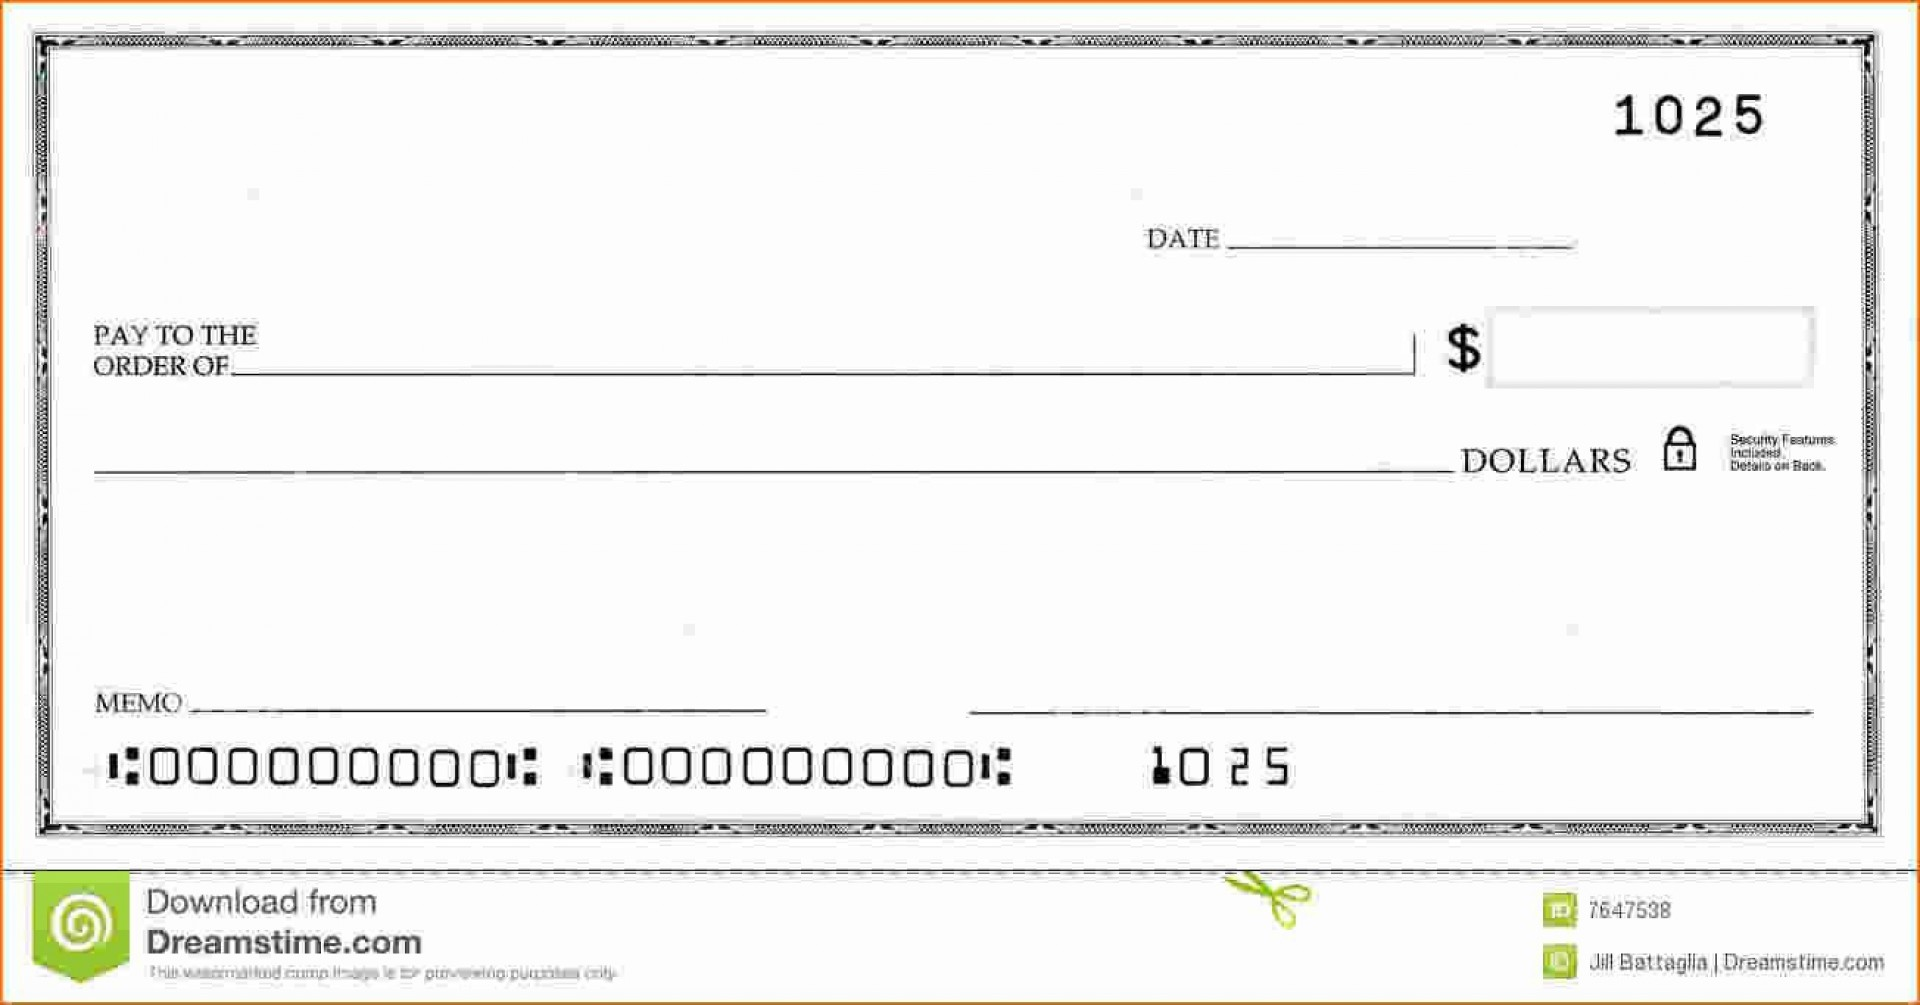 005 Stirring Quickbook Check Template Word Idea 1920